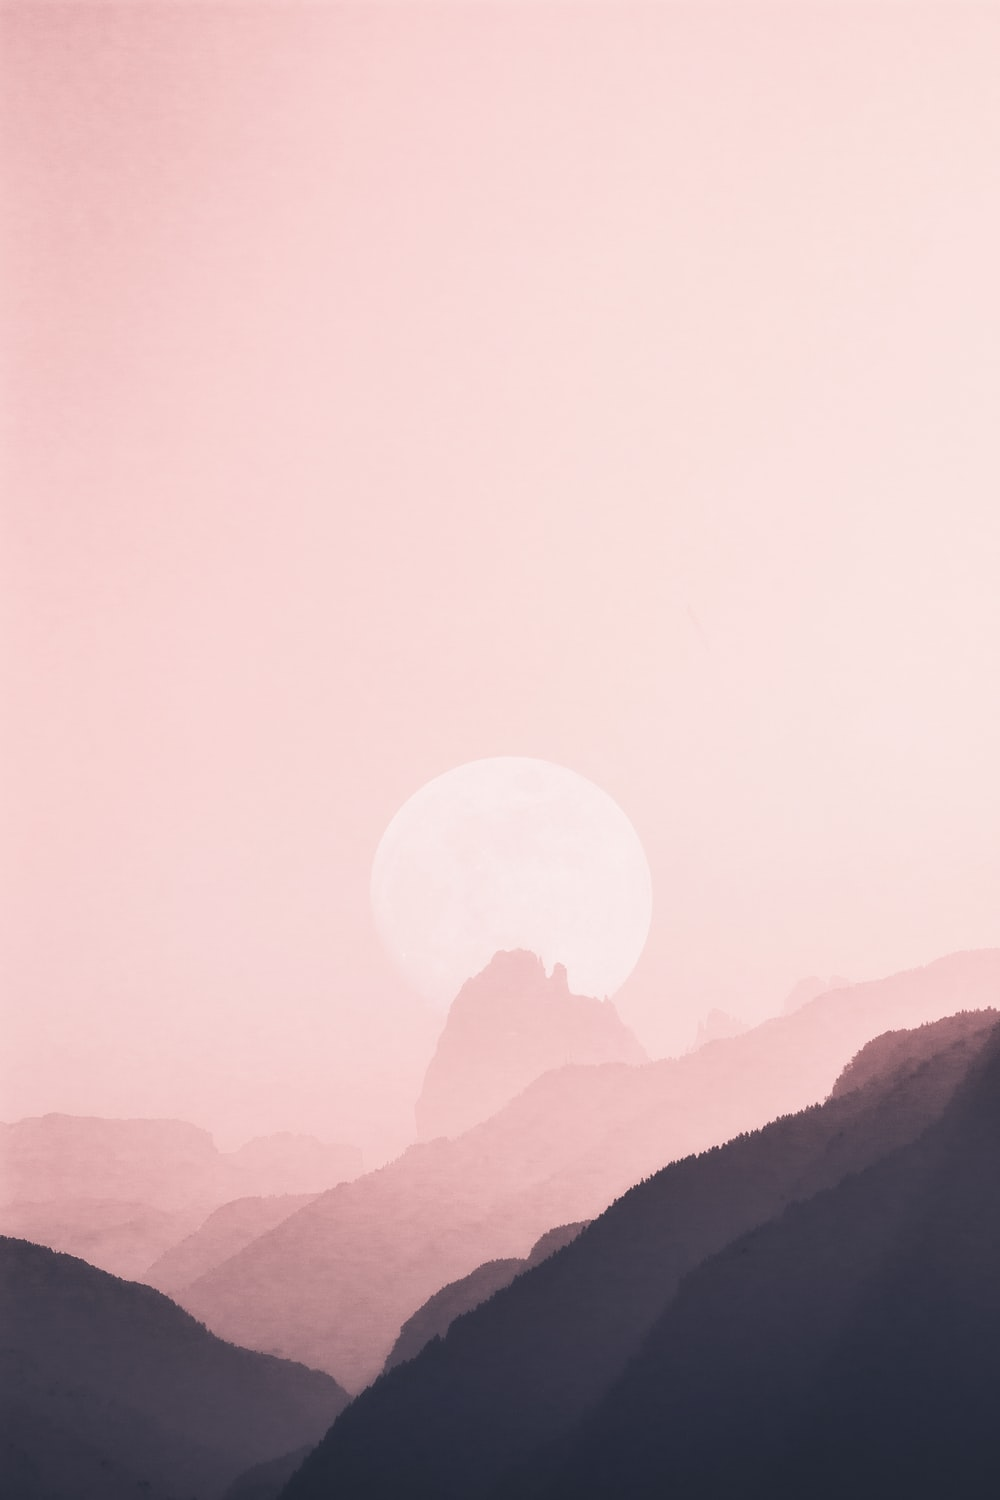 Best 100 Free Background Images Hd Download Your Next Background Photo On Unsplash